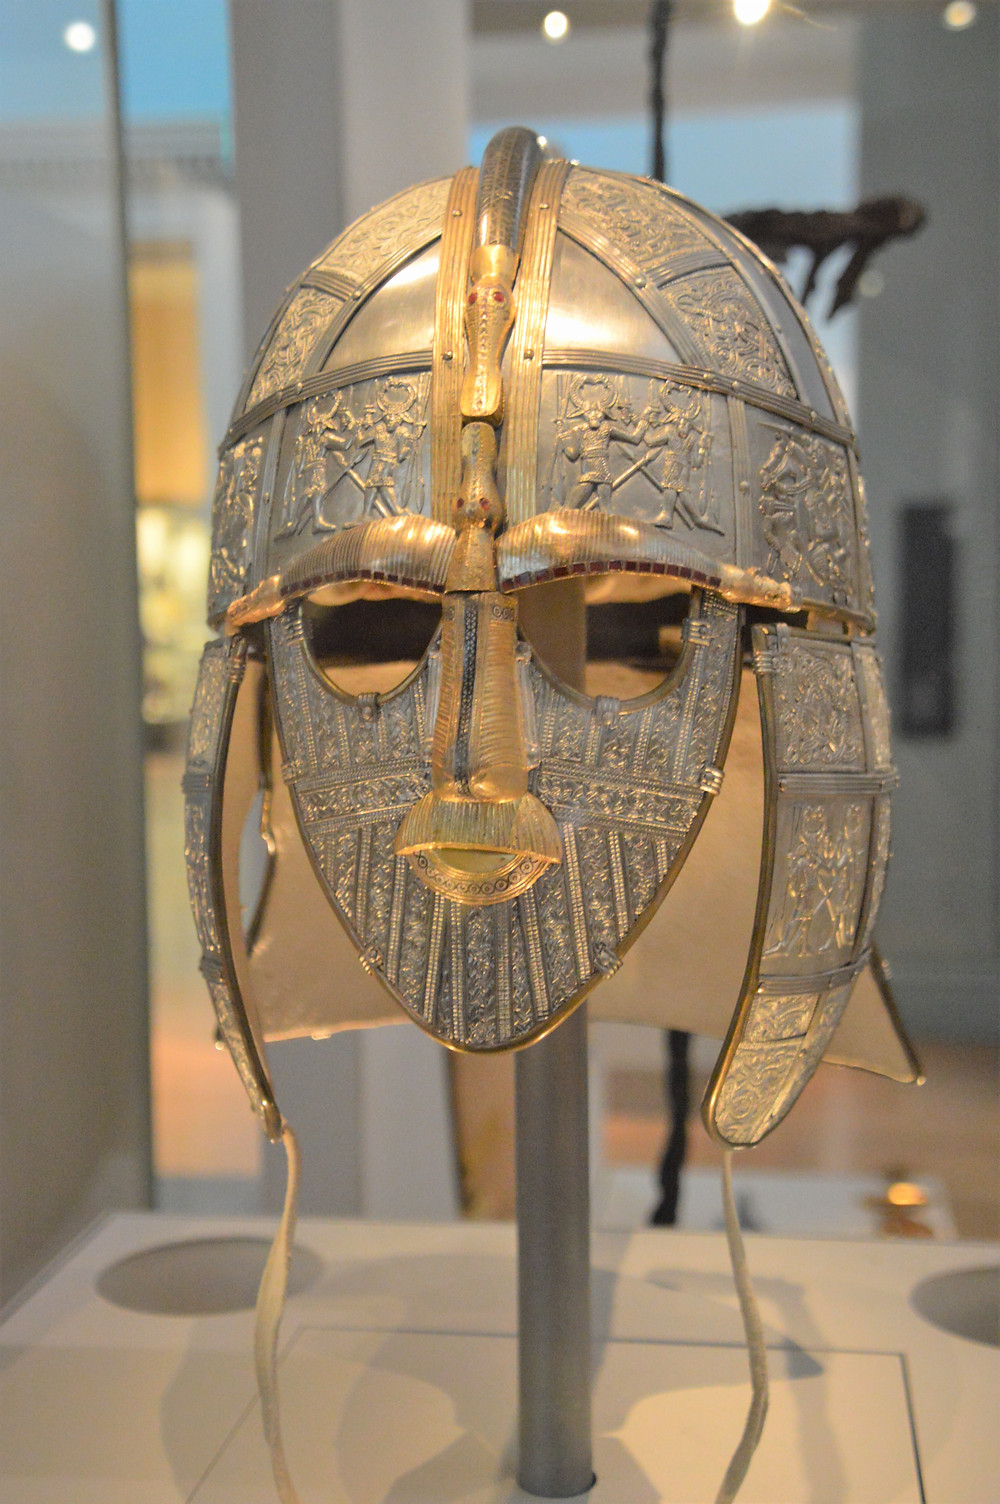 On display in The British Museum a replica of Sutton Hoo helmet from around 600 AD